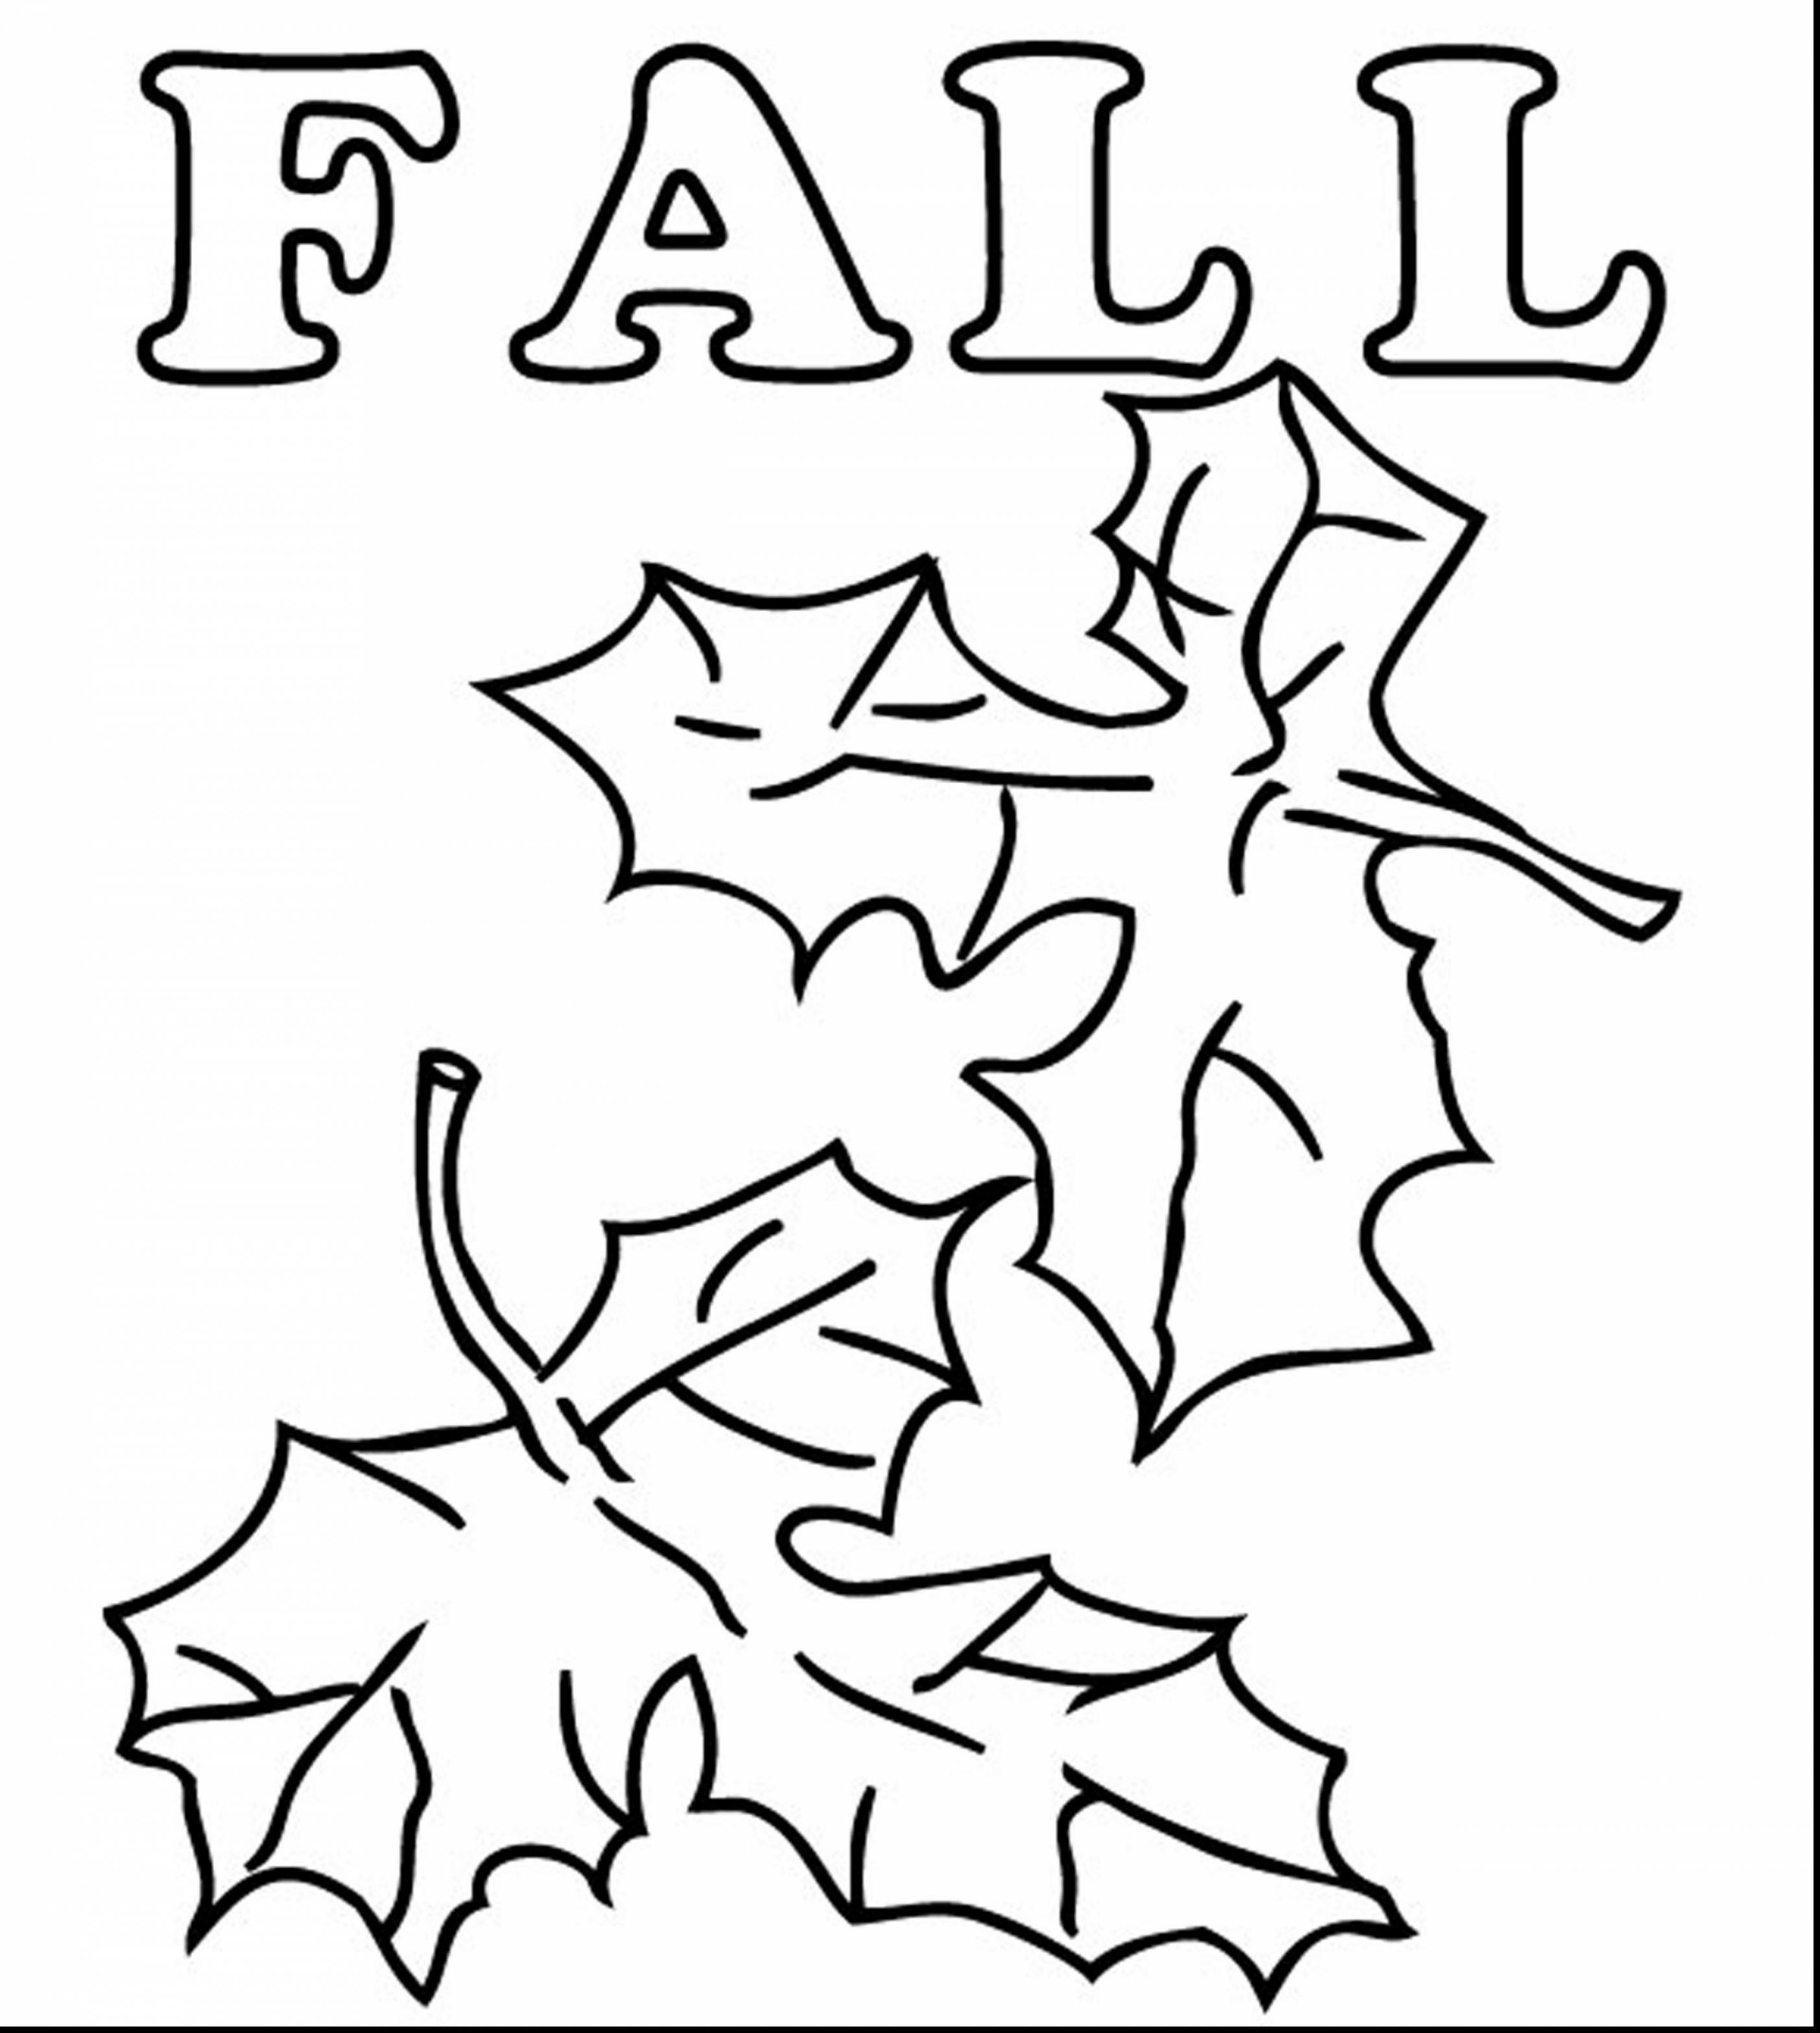 2805x3133 Baylee Jae Coloring Pages Lovely New Holly Leaves With Bright Red